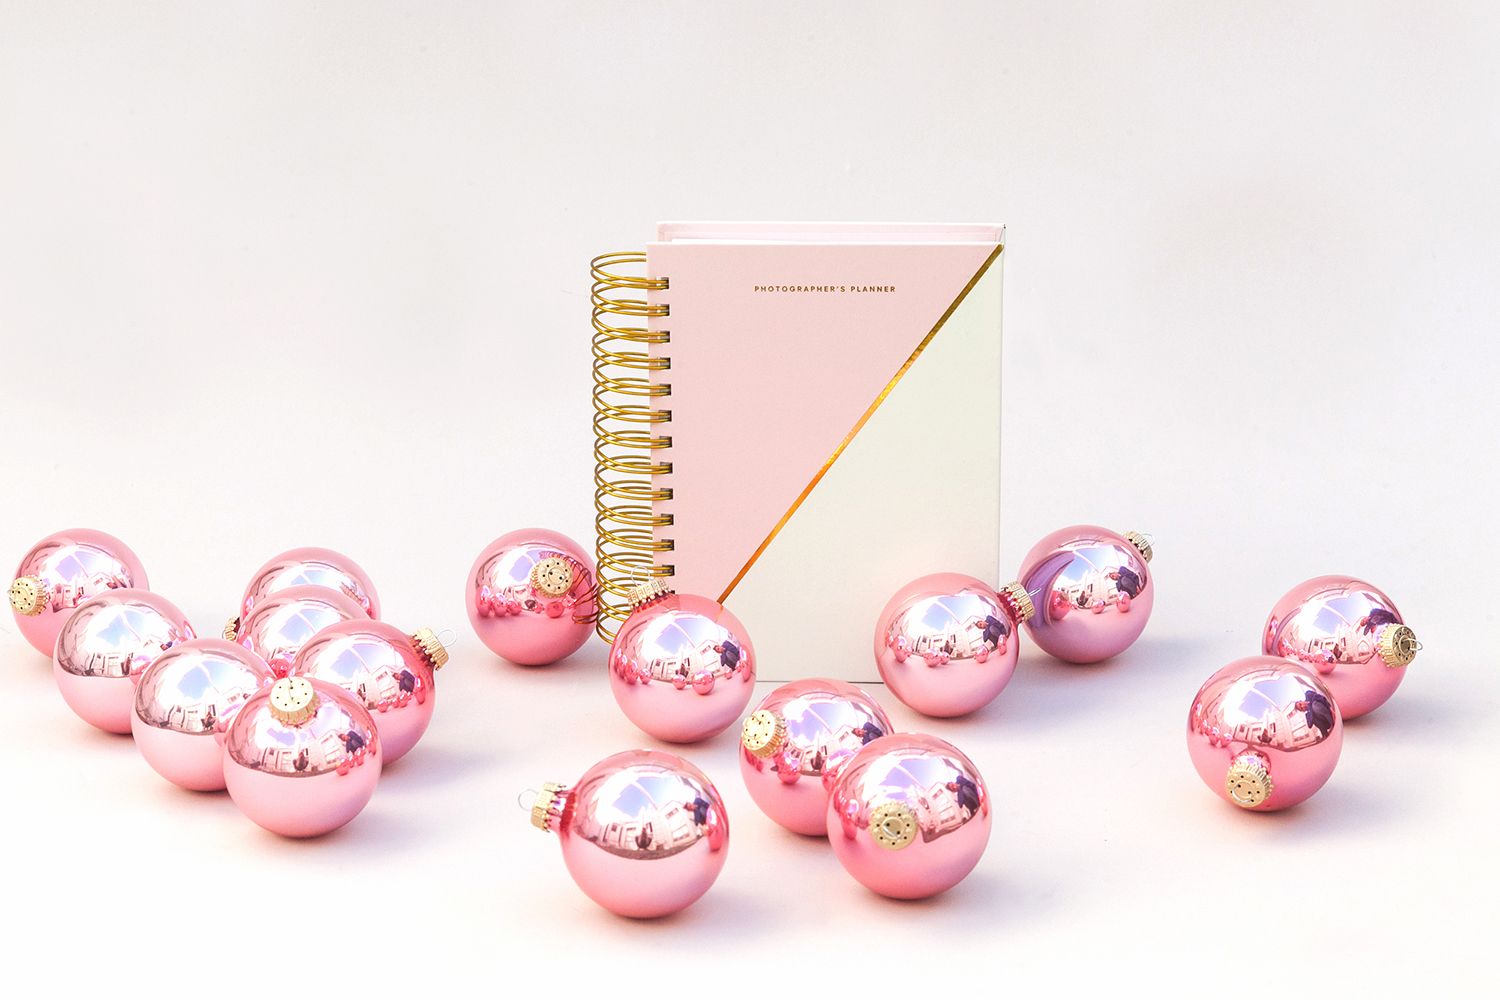 Photographer's Planner by Galler.ee